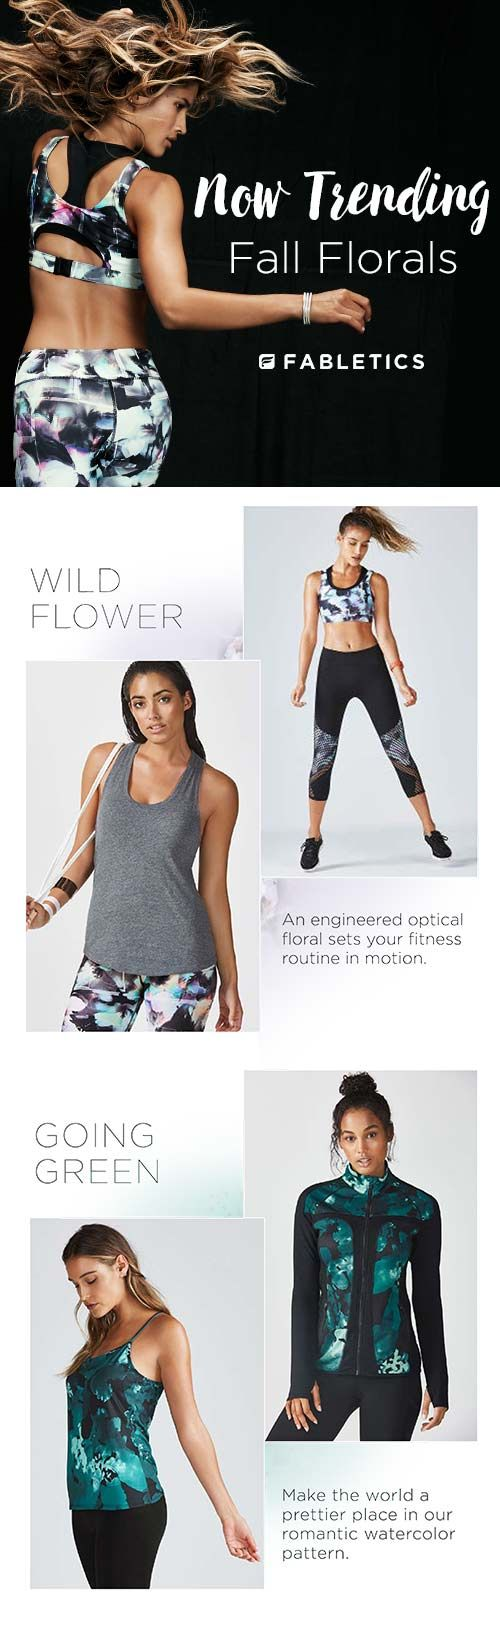 Now trending: Fall Florals. Discover Fabletics by Kate Hudson as we explore fall...